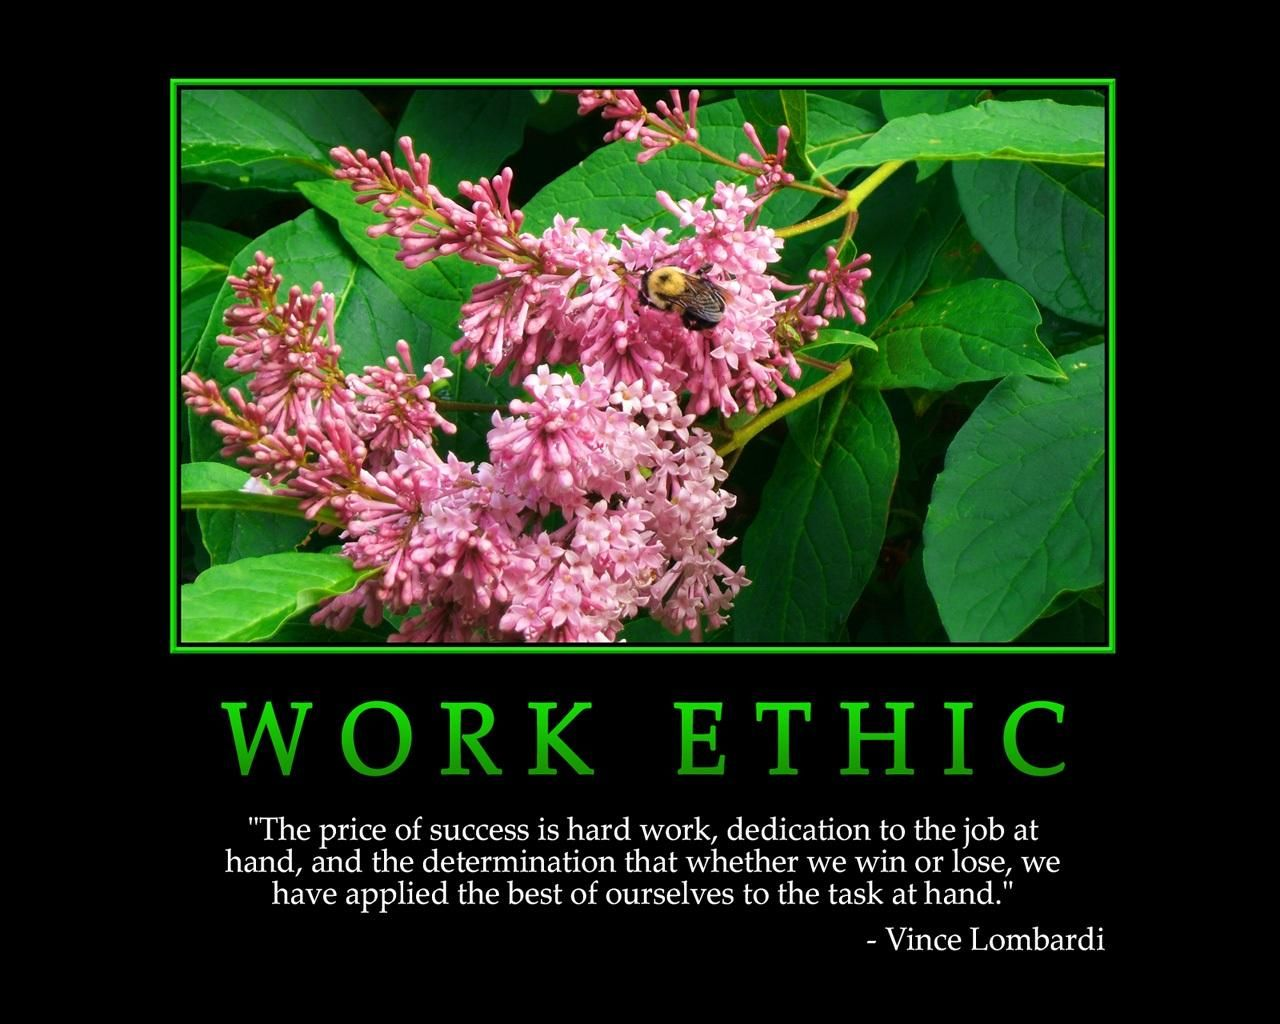 work ethic quote quotes keep in mind photos and work ethic quote